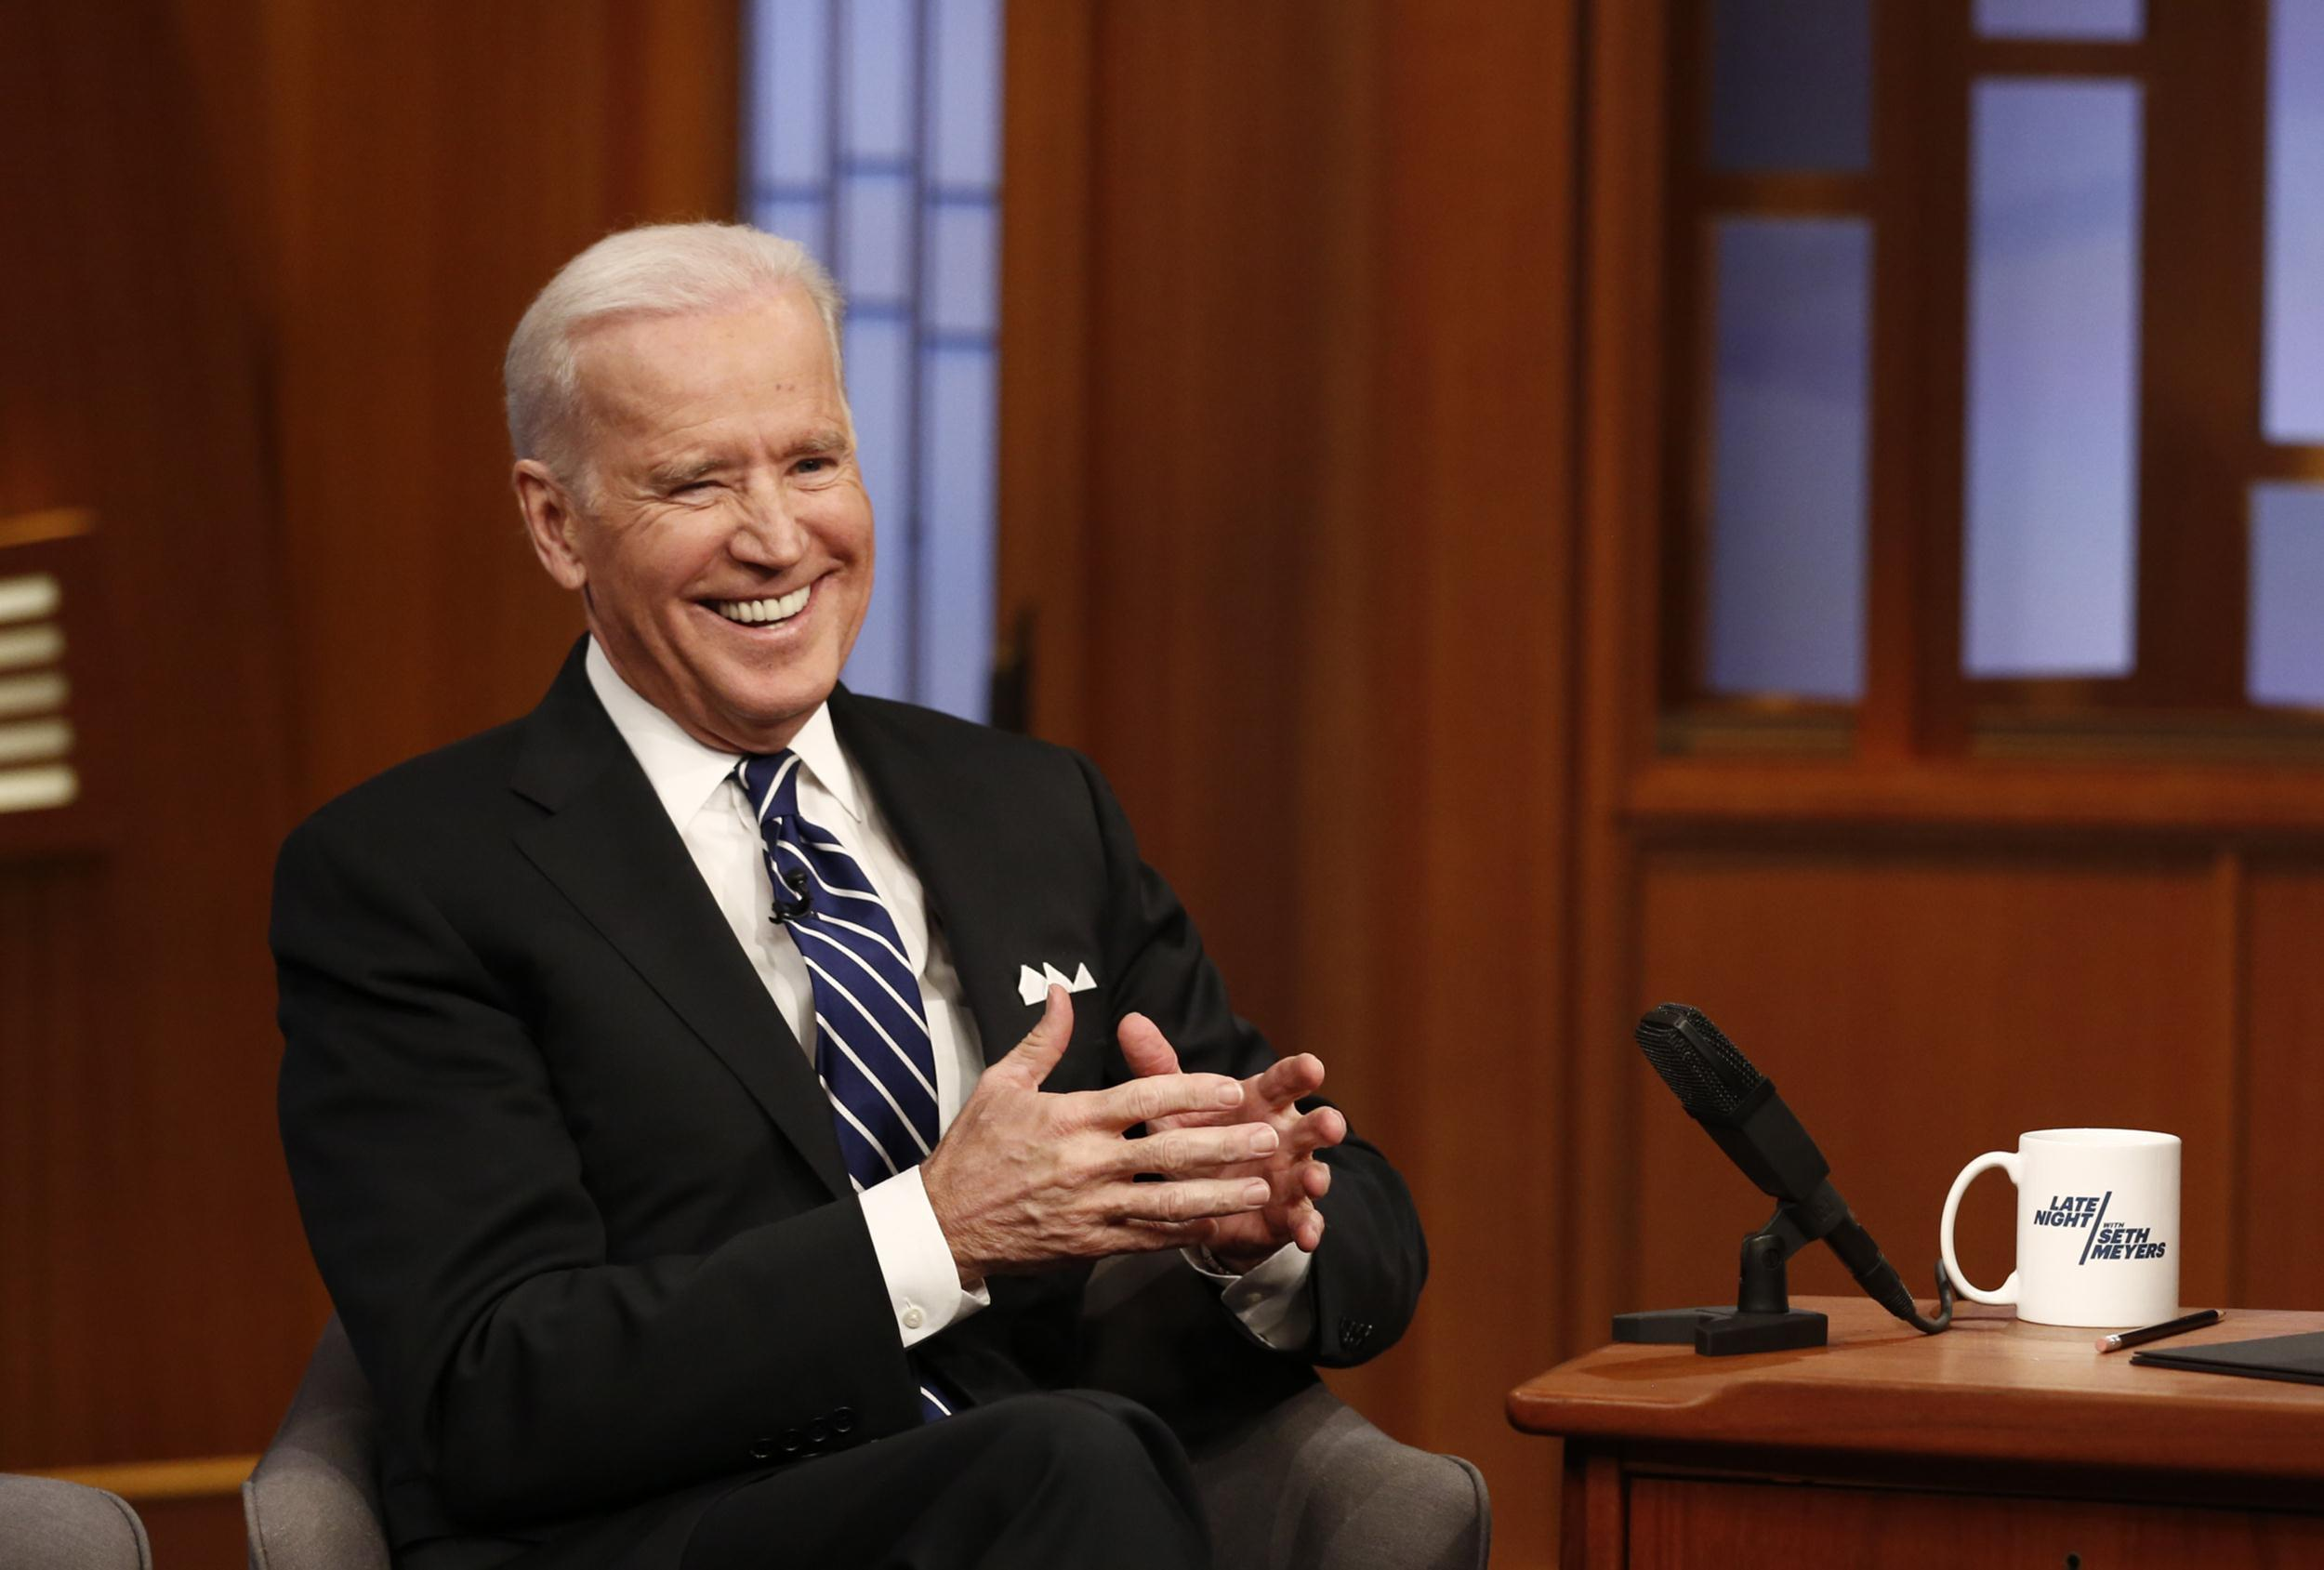 Image: Vice President Joe Biden during an interview with host Seth Meyers on Late Night